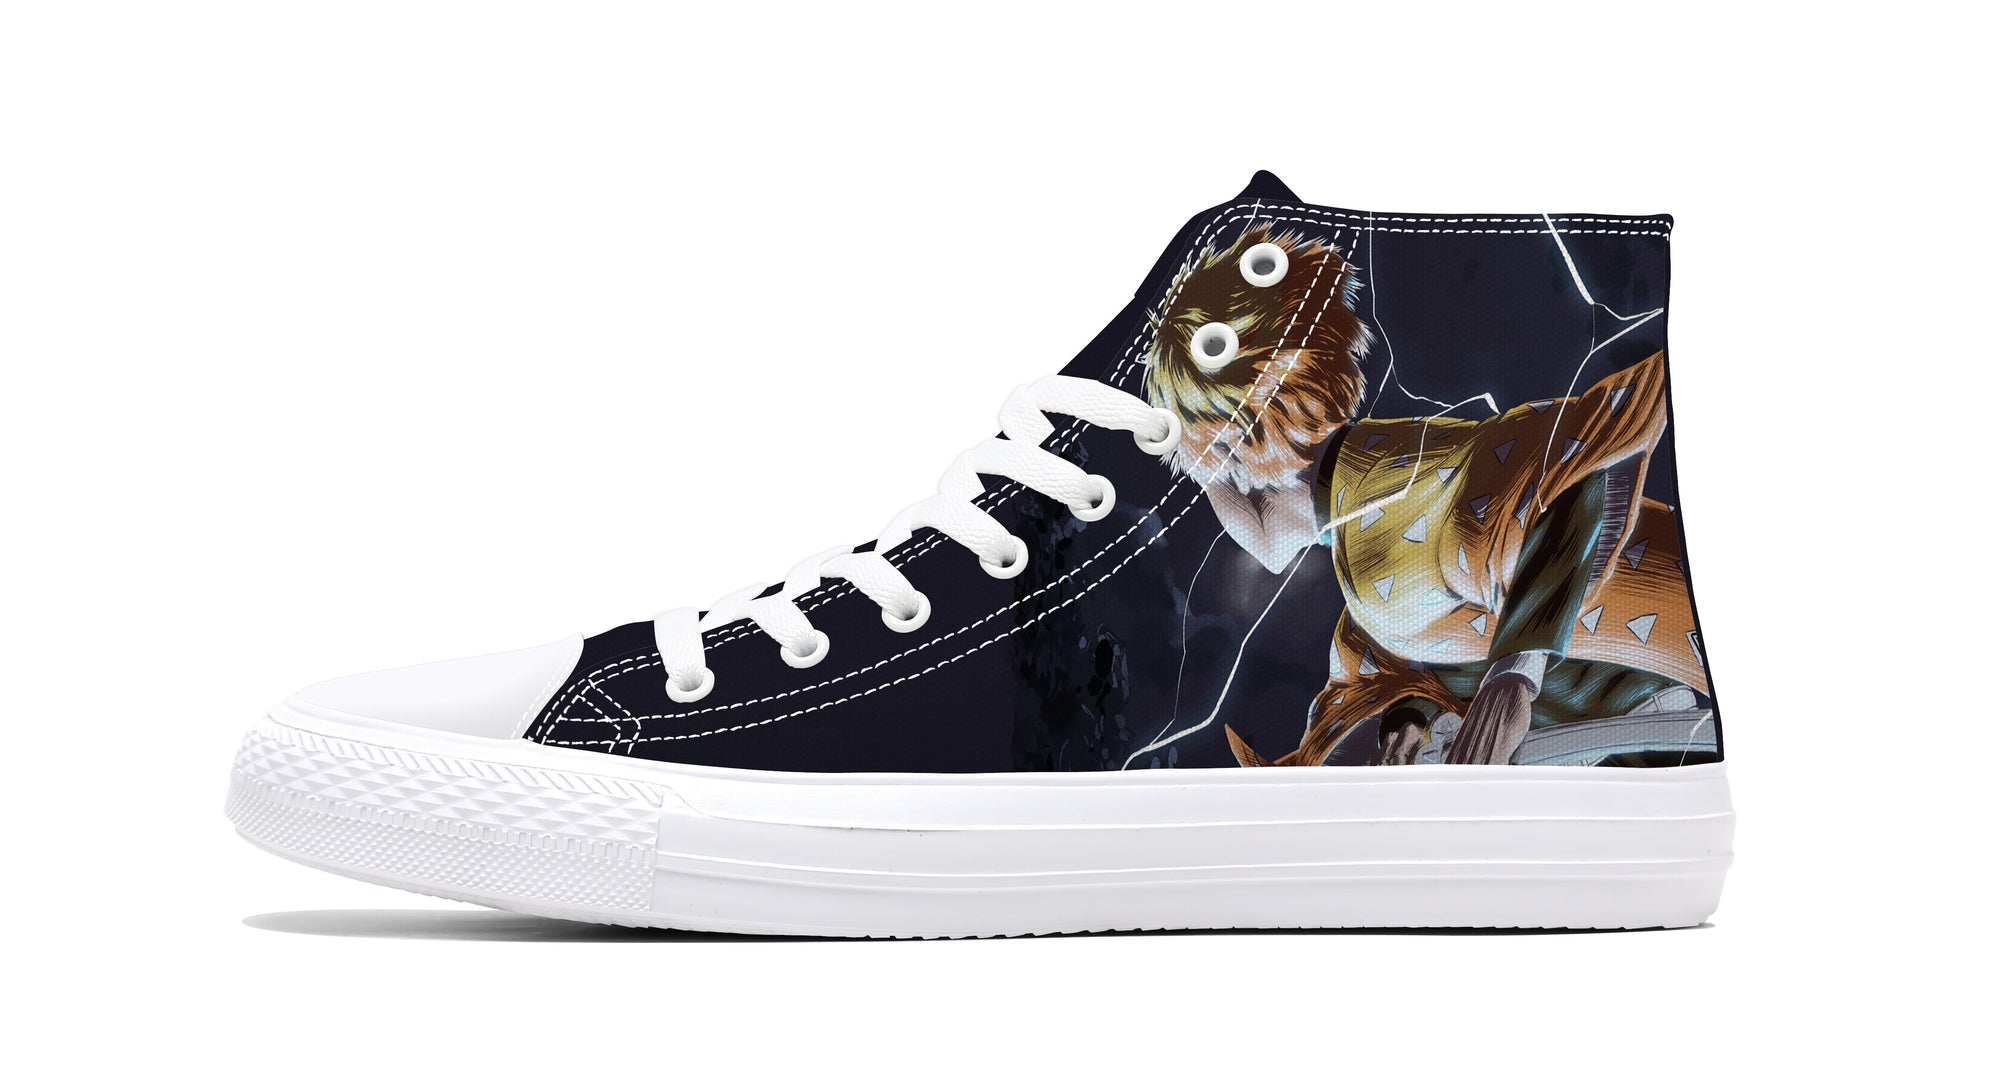 Zenitsu Agatsuma Lightning Breathing Sneakers Demon Sneaker Demon Slayer Kimetsu No Yaiba Shoes